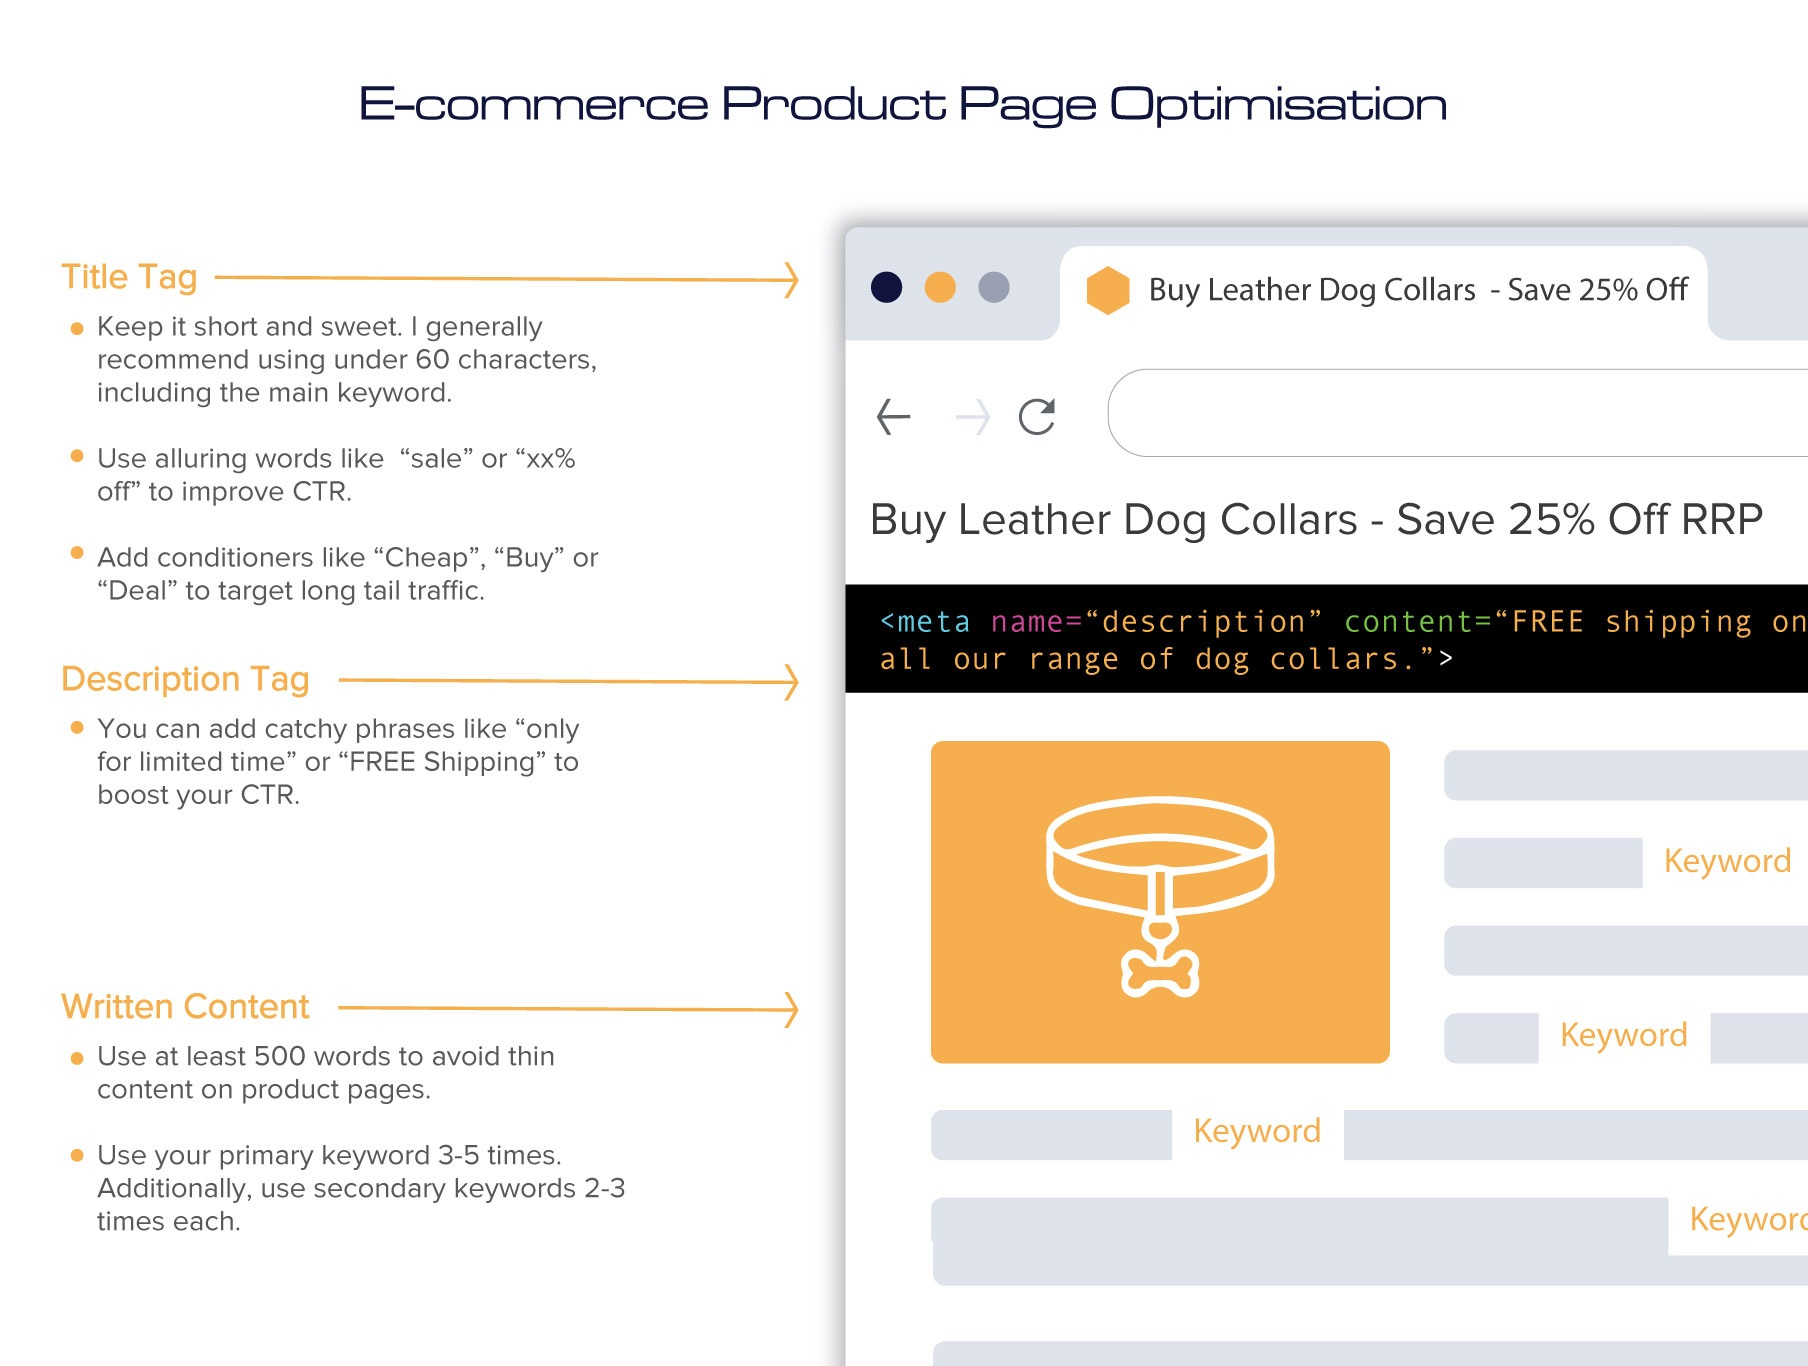 How to optimise ecommerce product pages